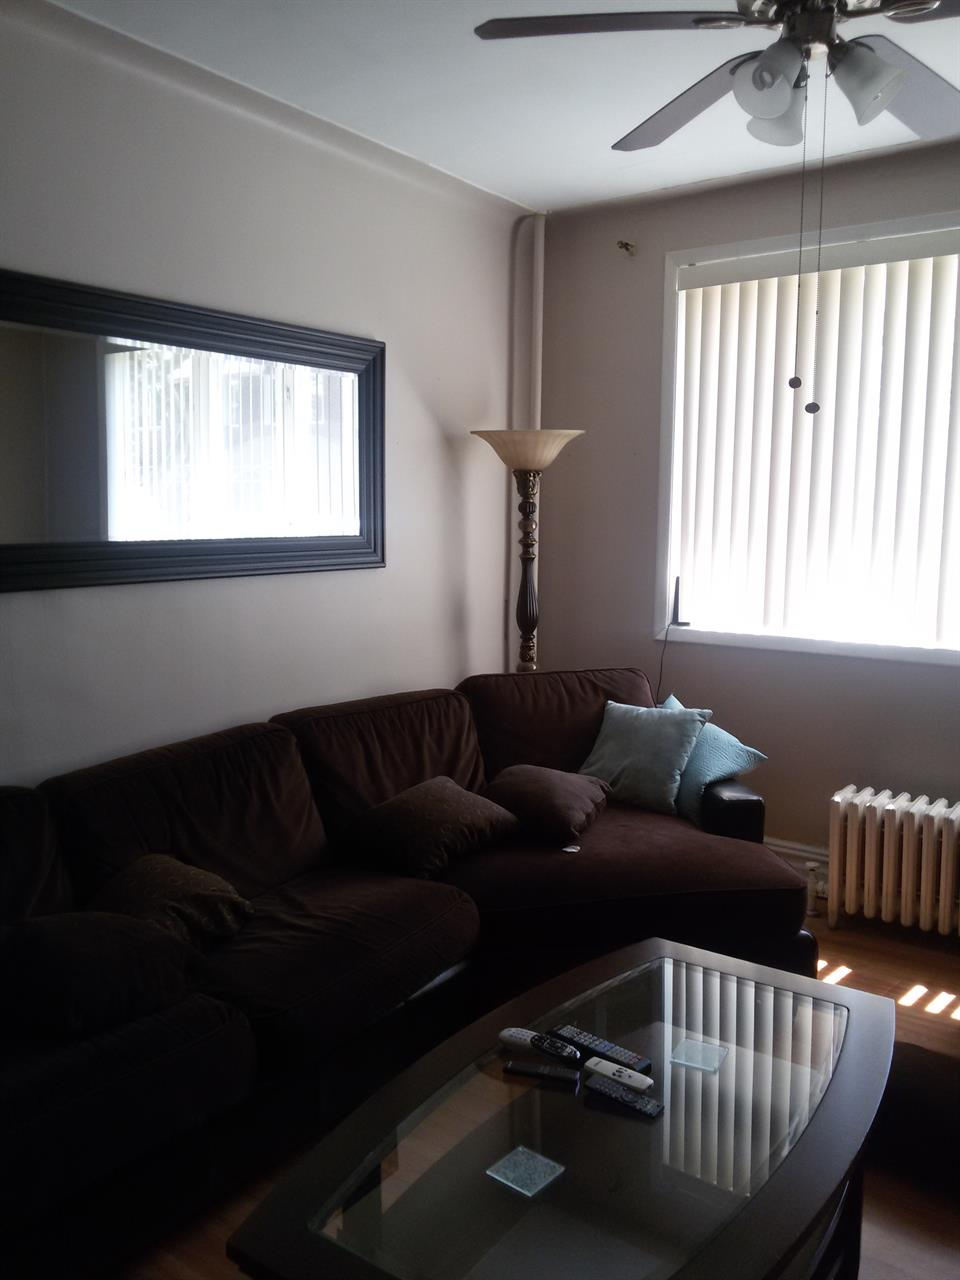 Additional photo for property listing at 62 Bay 8th Street Brooklyn N.Y. 11228 Other Areas, USA